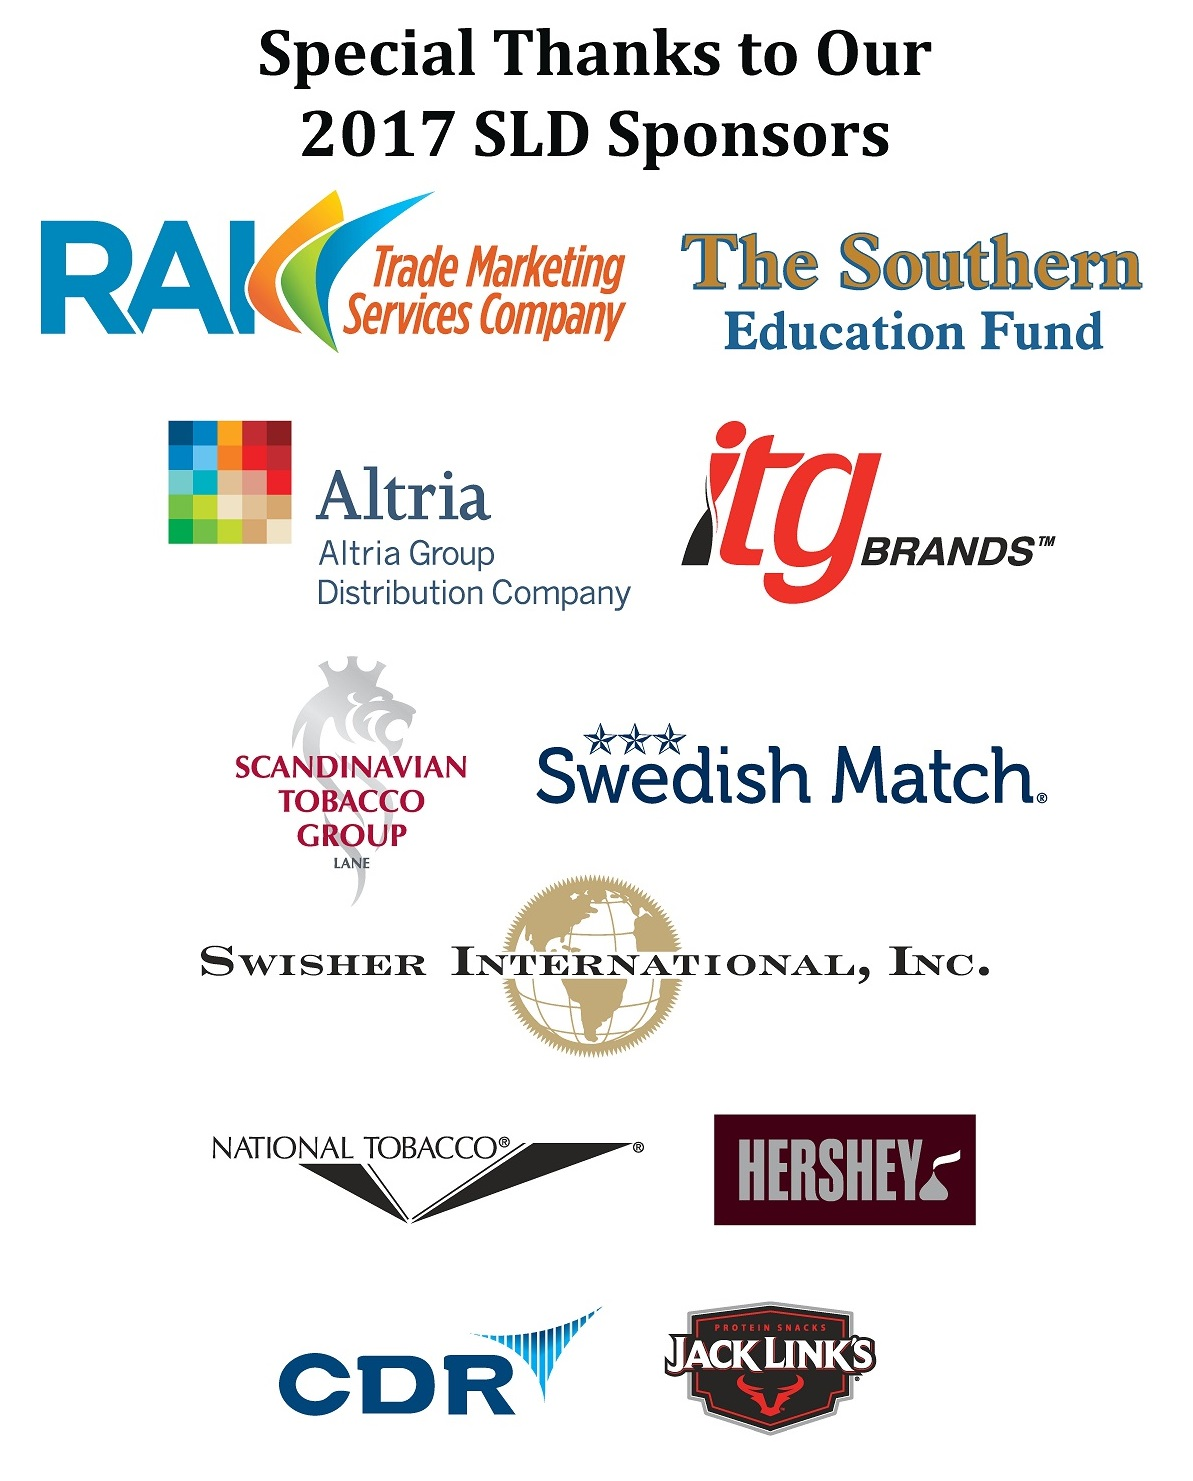 The Southern Sponsors